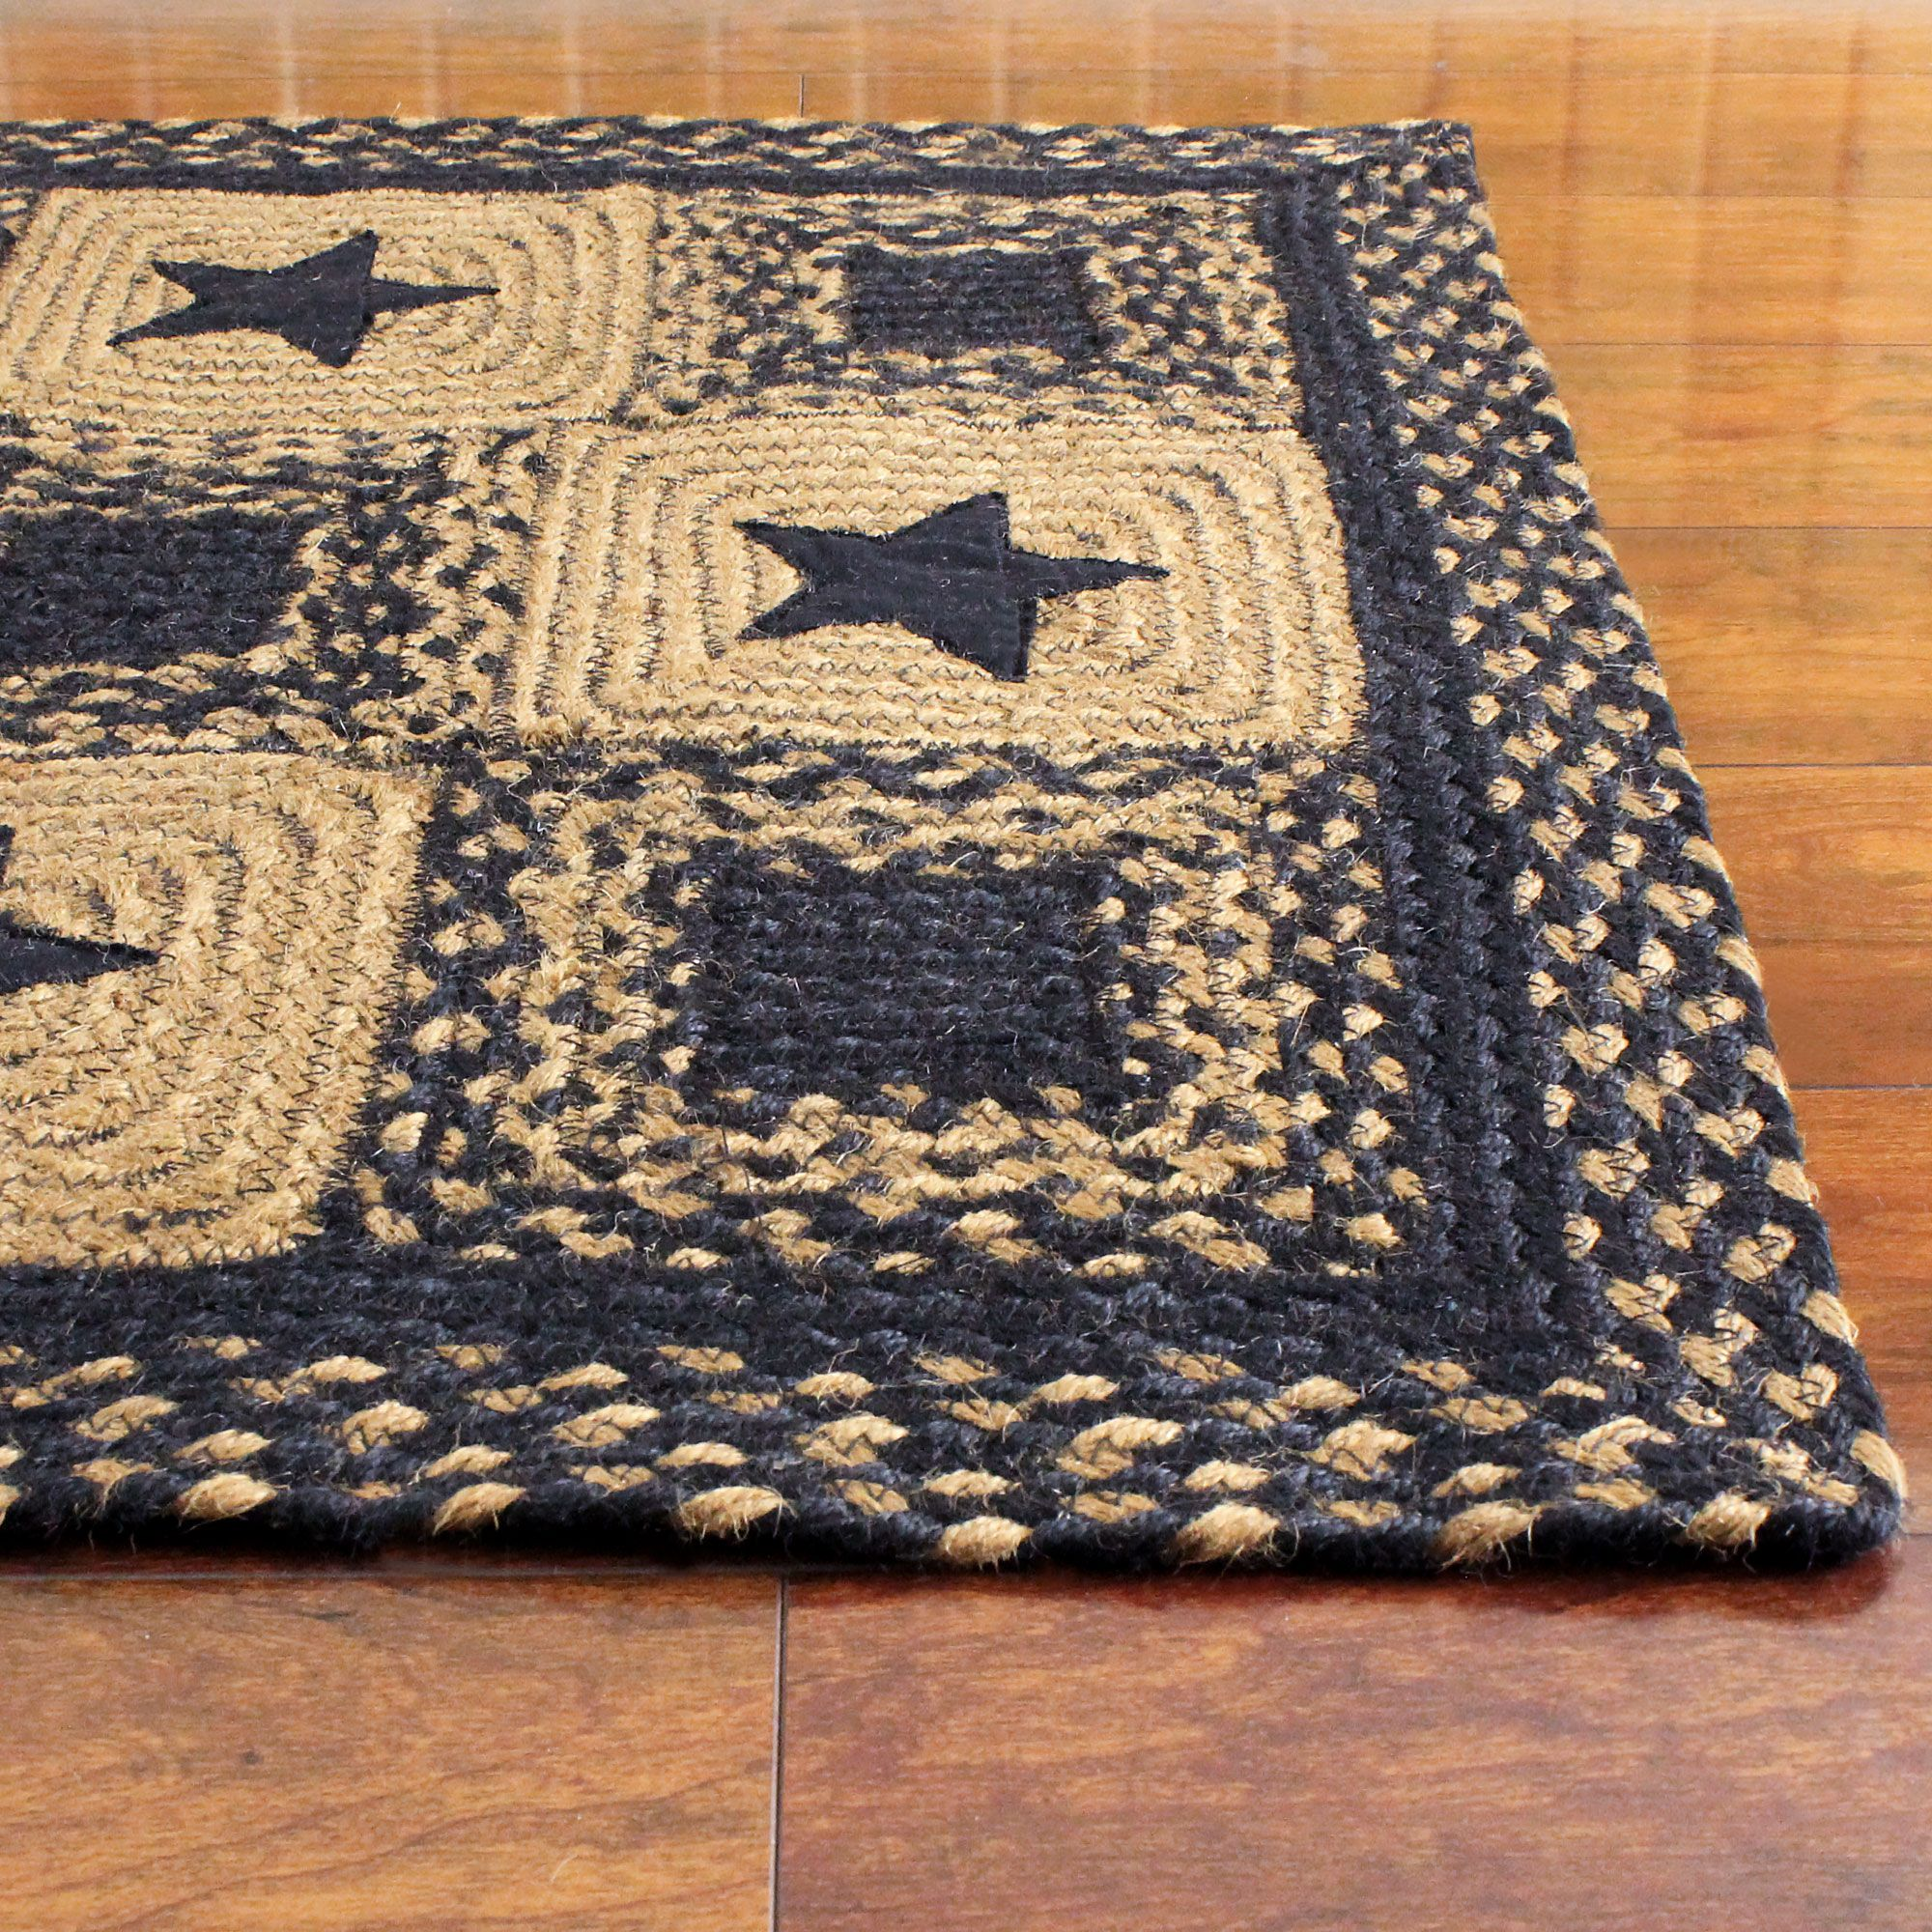 Black Country Star Jute Braided Rugs